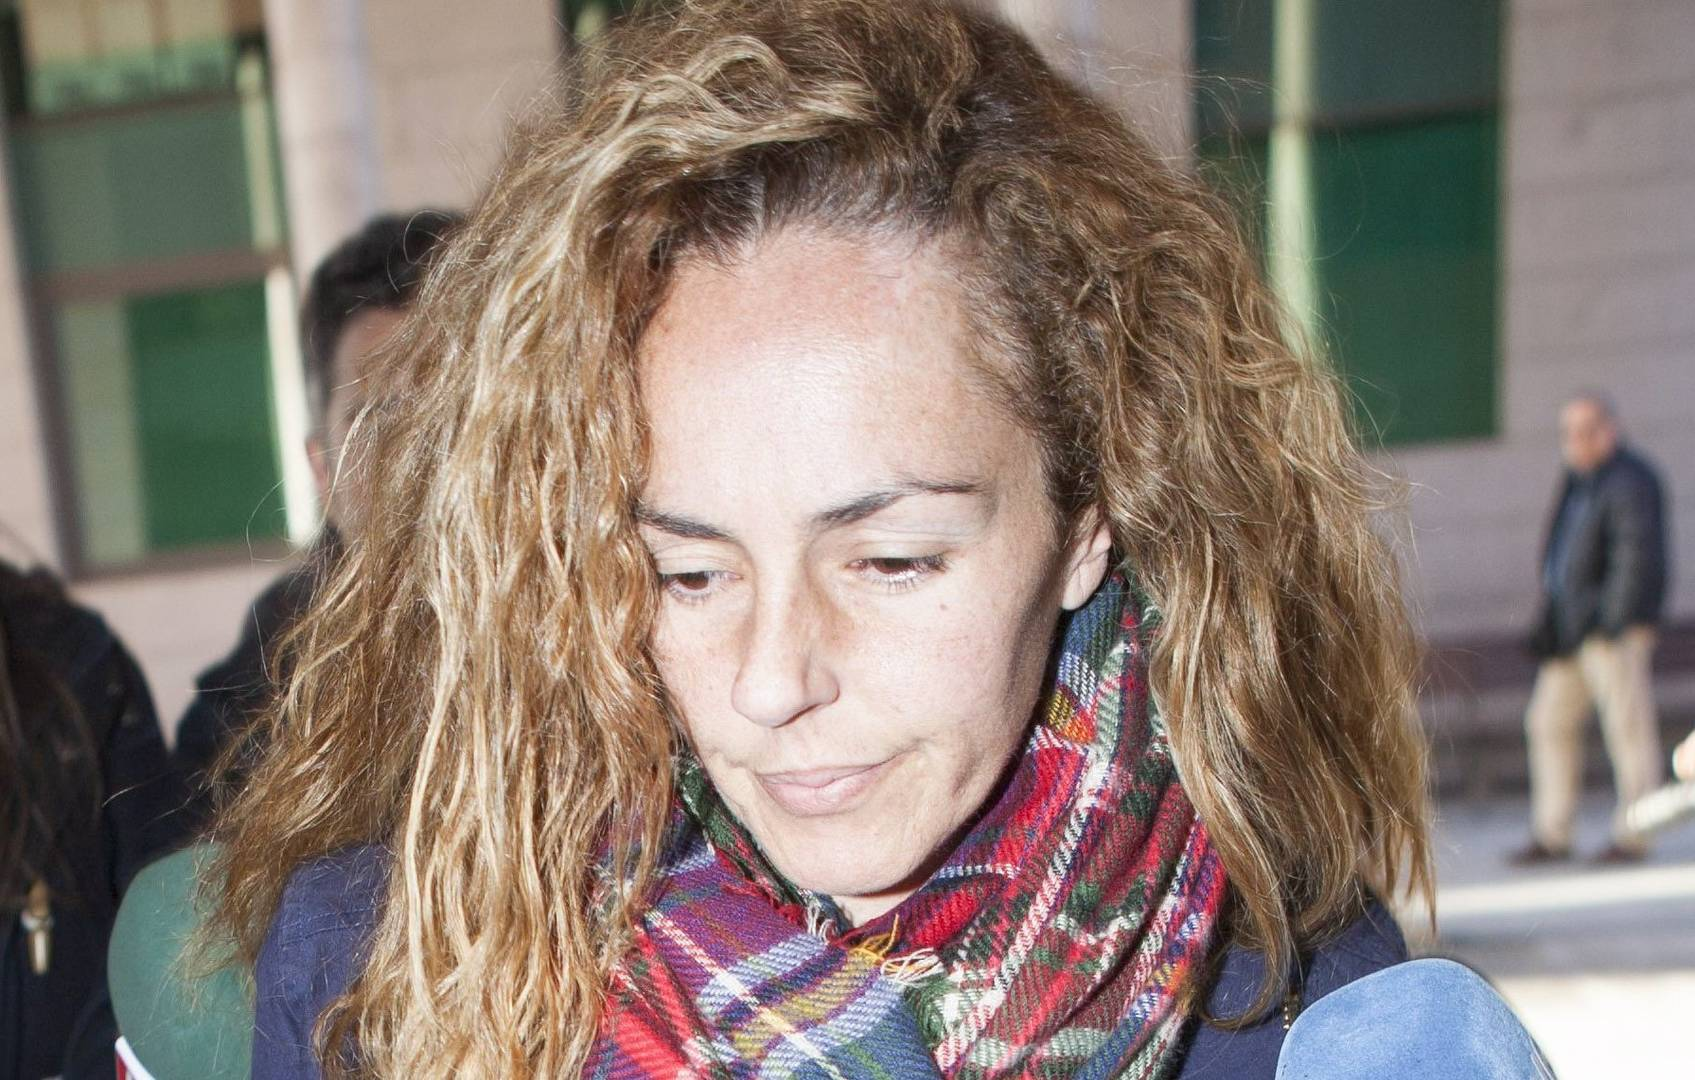 Varapalo final para Rocío Carrasco: archivada la demanda por malos tratos contra Antonio David